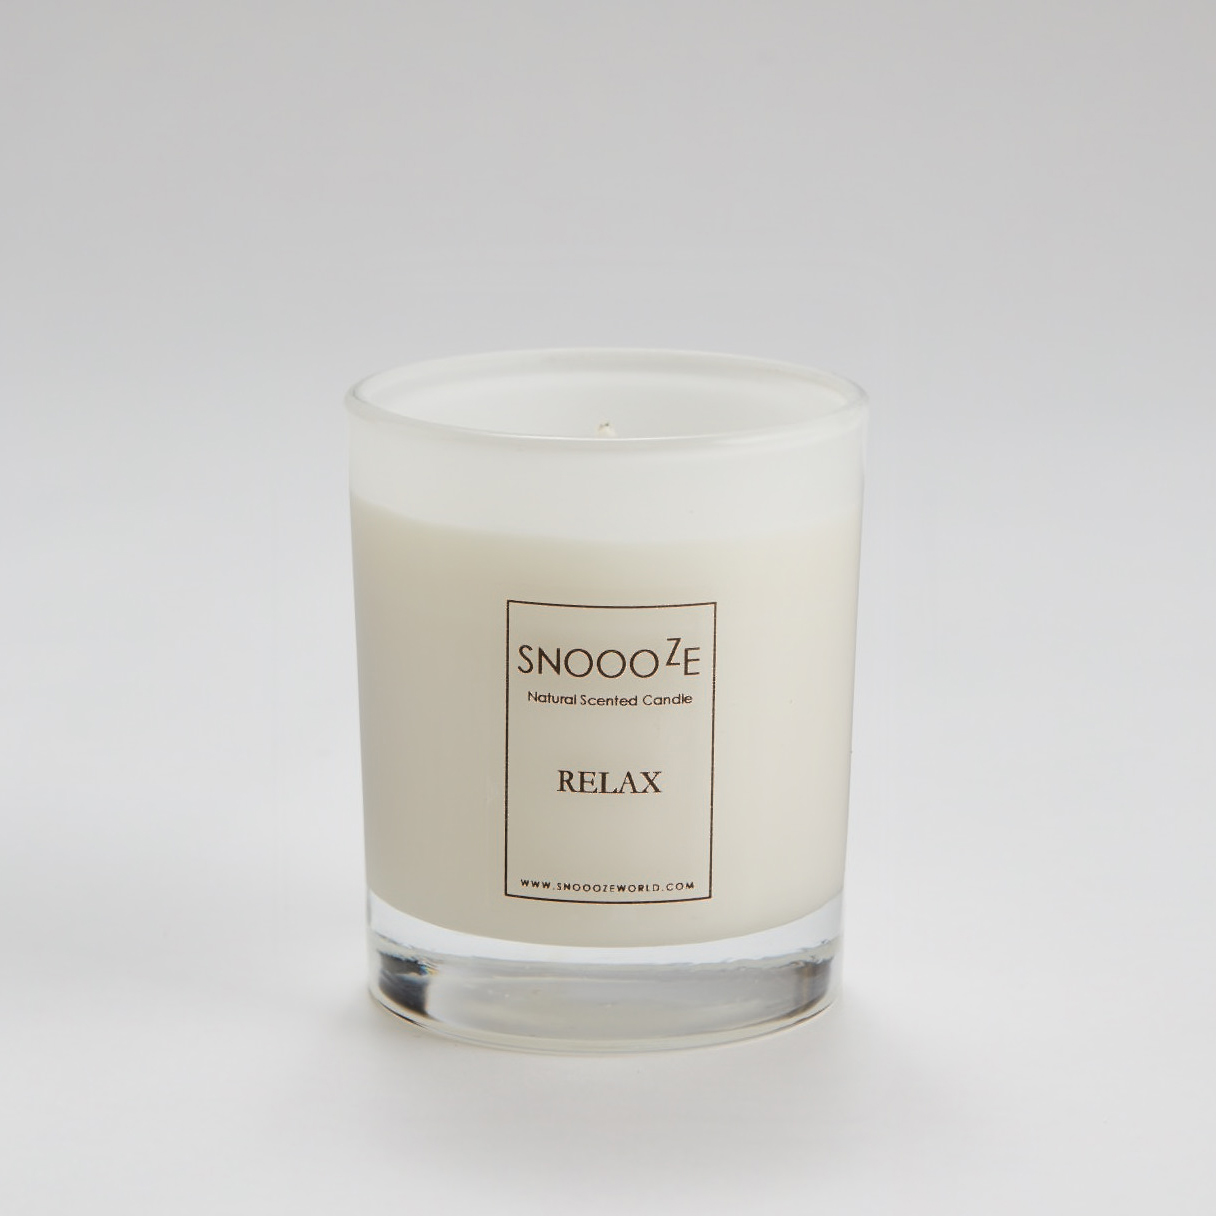 Natural scented candle (Relax)